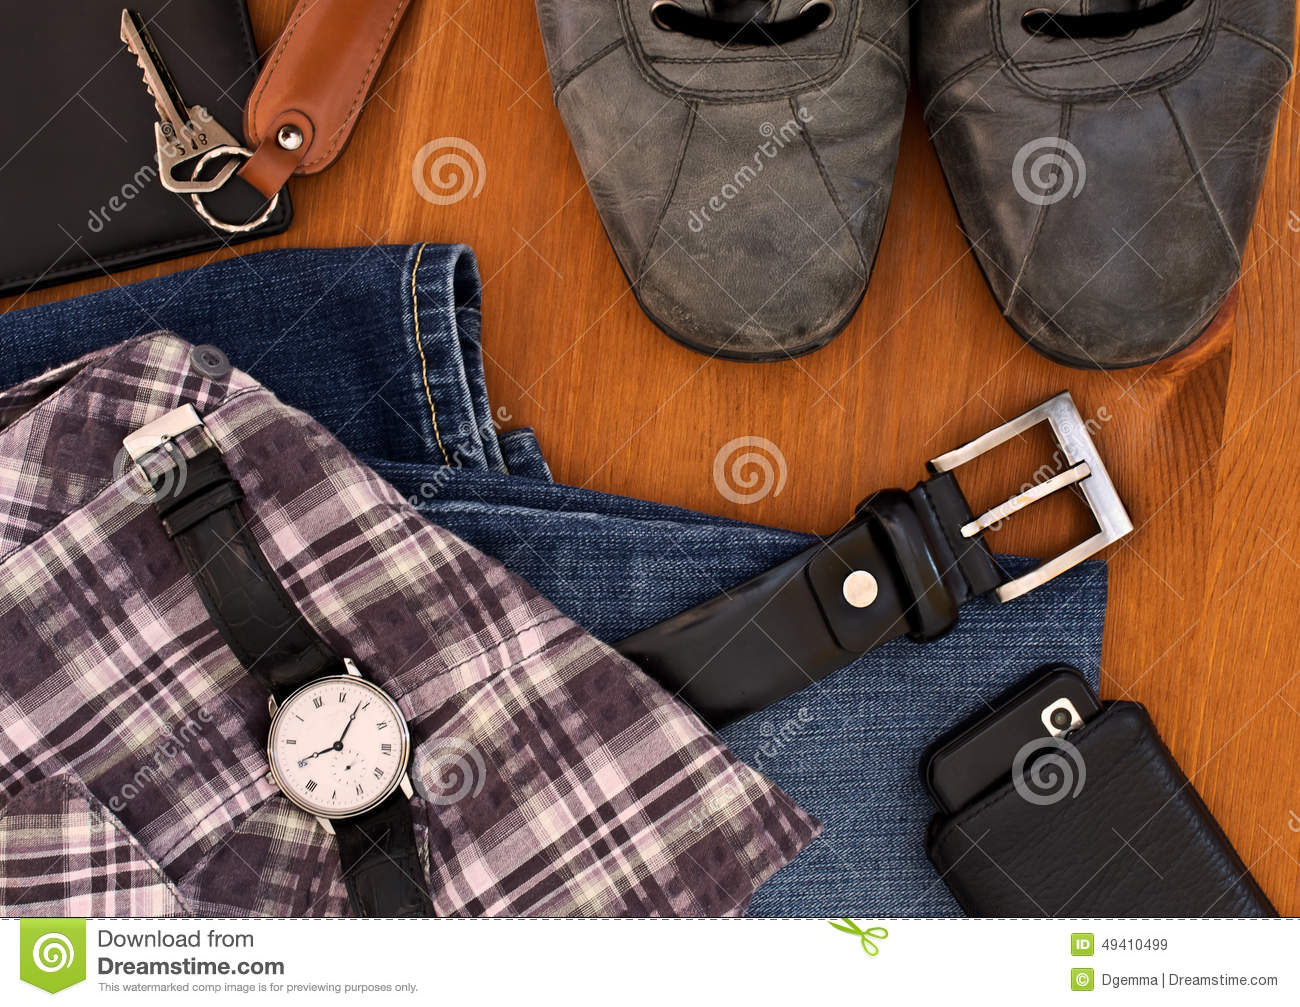 Men's Clothing And Accessories Stock Photo - Image: 49410499